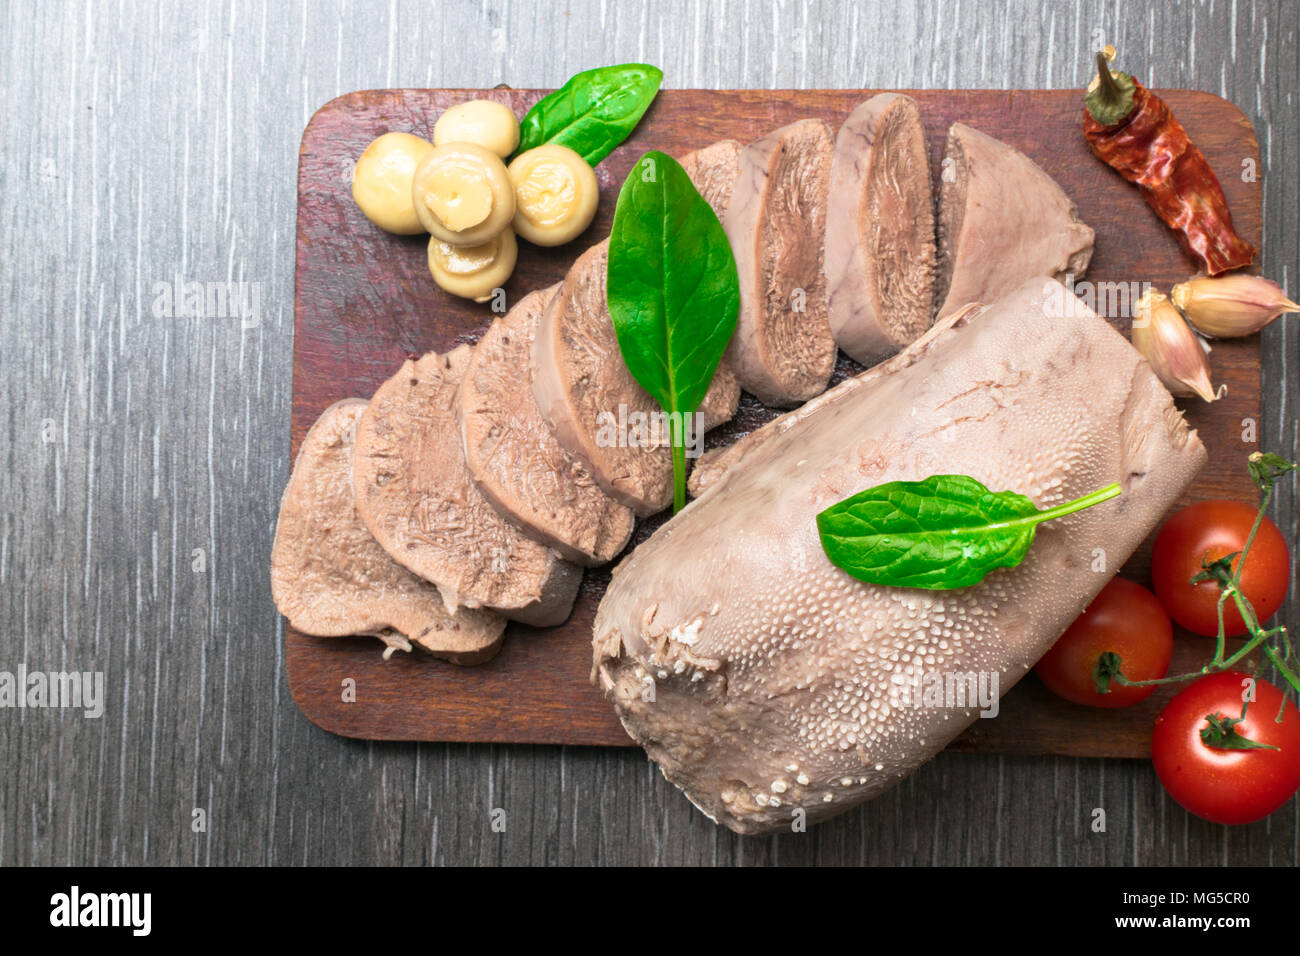 Boiled beef, pork tongue with cherry tomatoes, mushrooms, basil leaf, studio shot, isolated on wood background. Top view - Stock Image